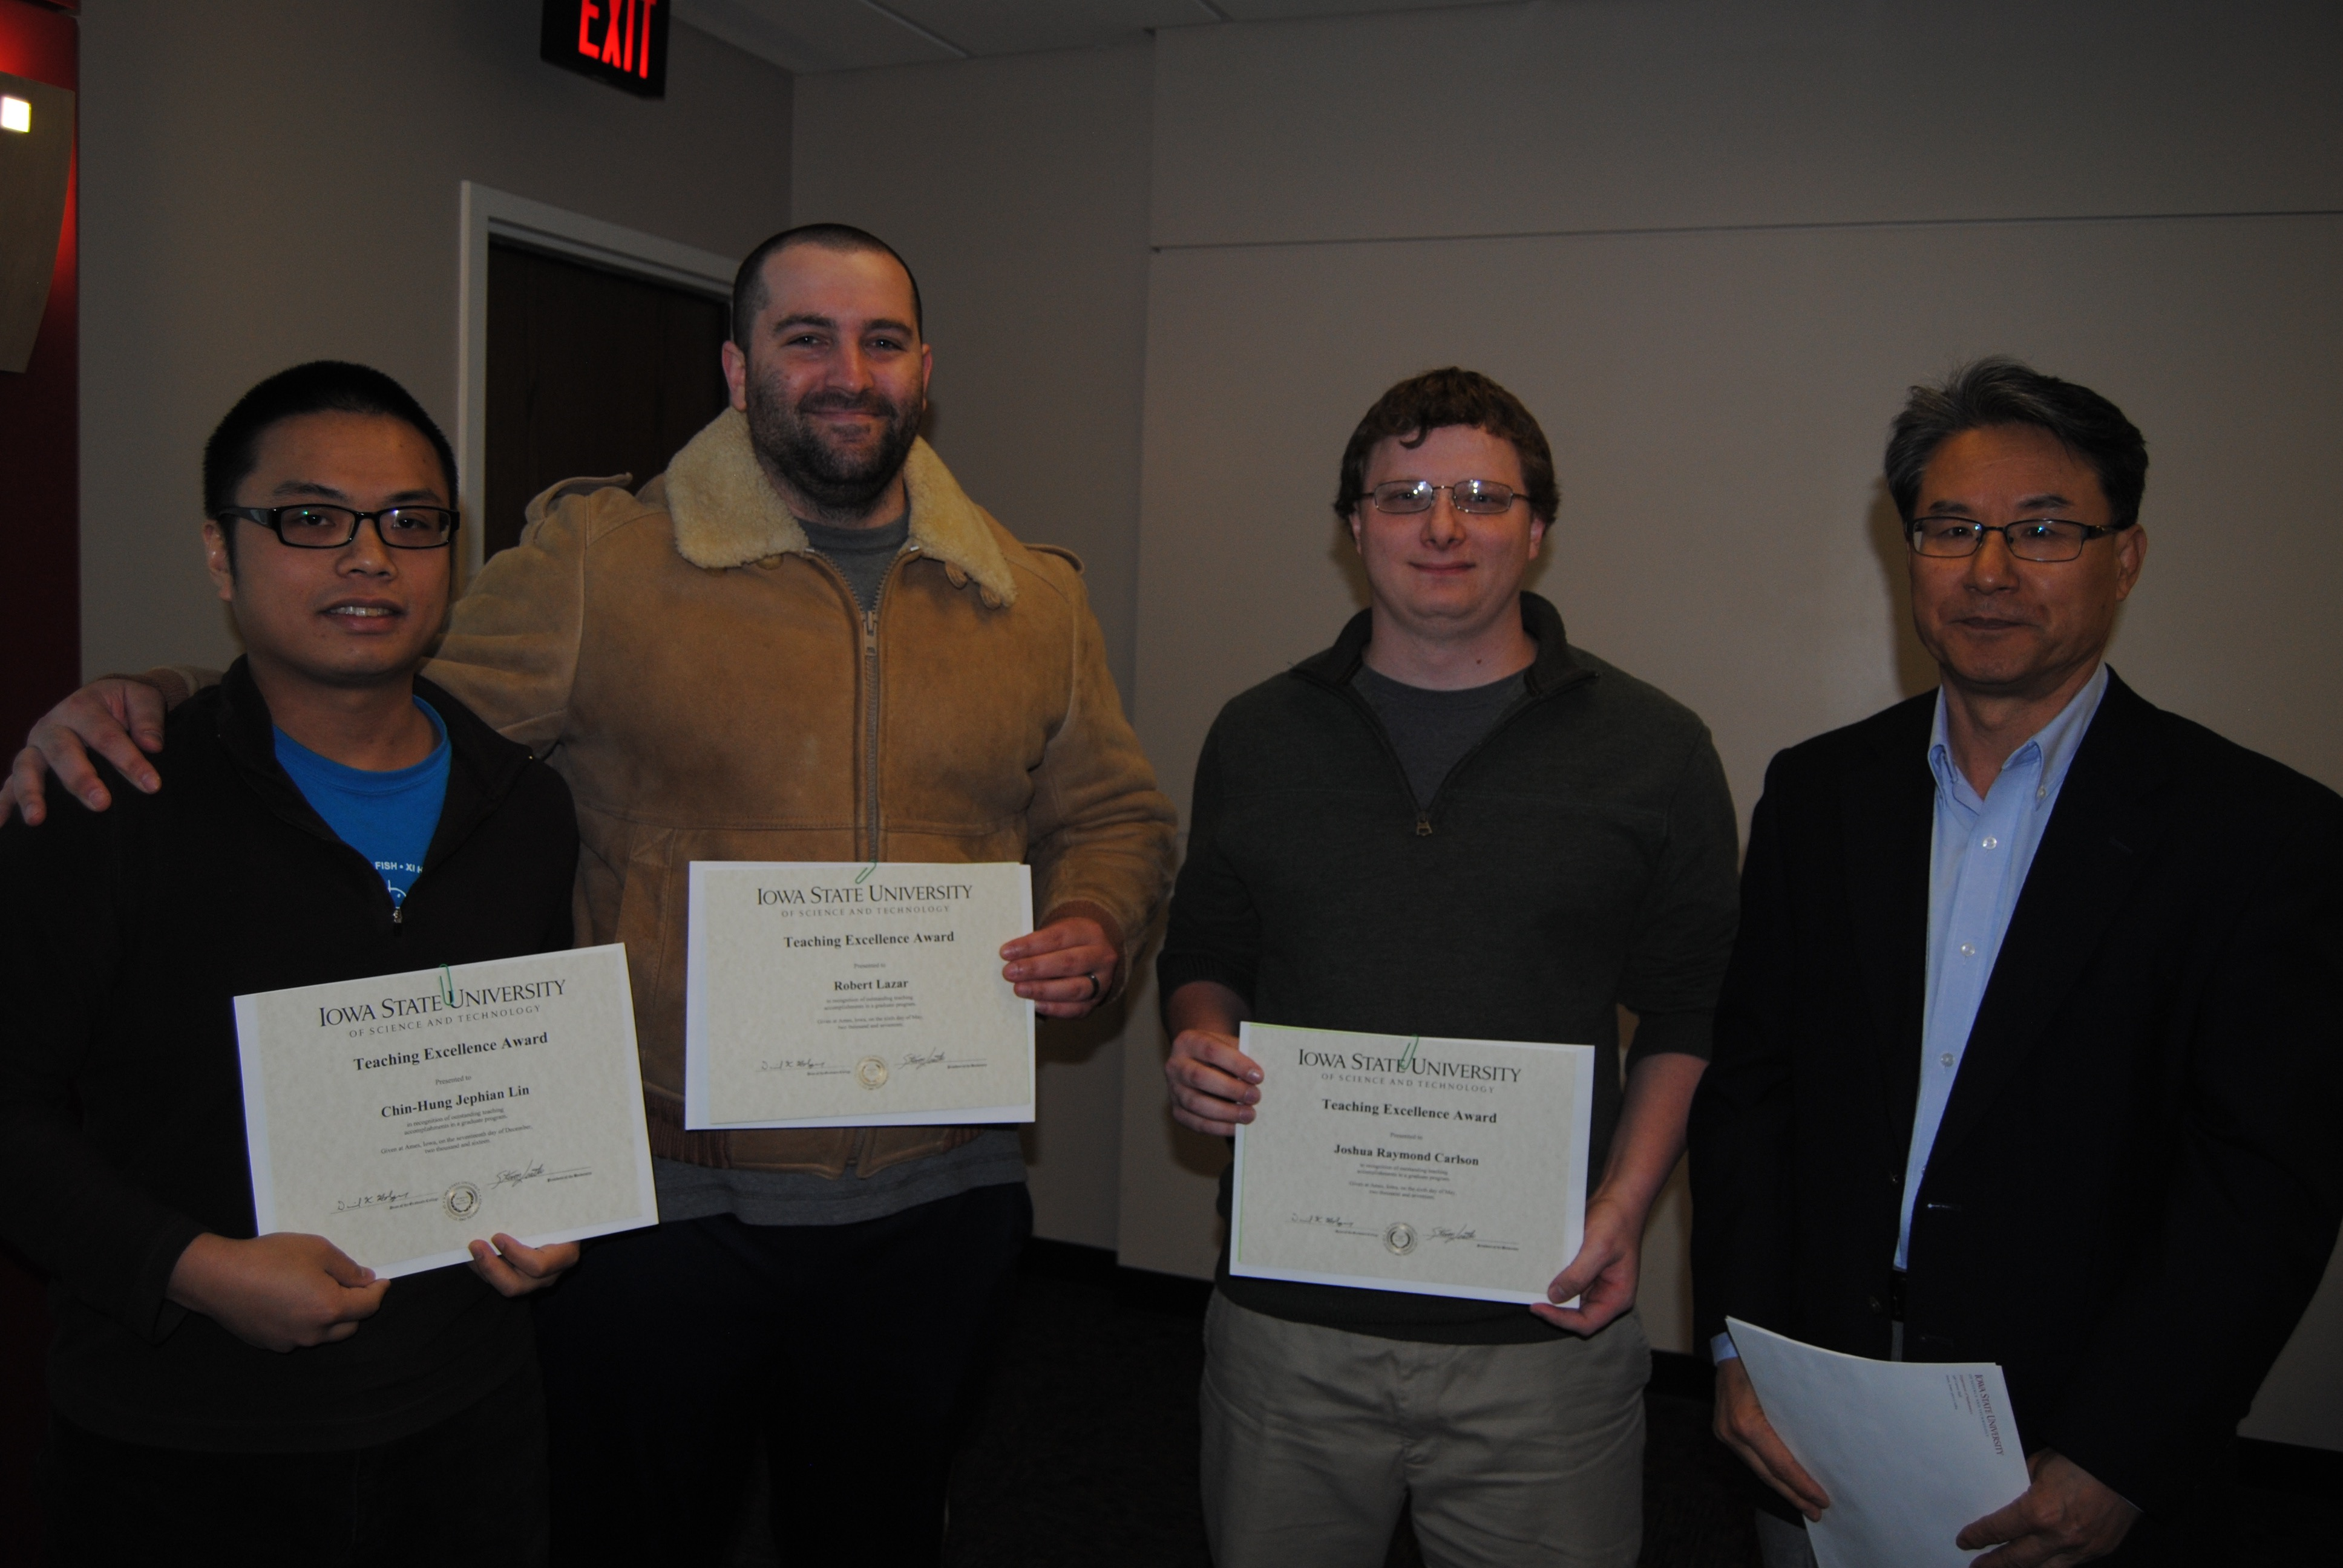 "Sung-Yell Song, associate professor of mathematics, presents graduate students: Chin-Hung ""Jephian"" Lin, Robert Lazar, and Joshua Carlson with certificates for the ISU Teaching Excellence Award."